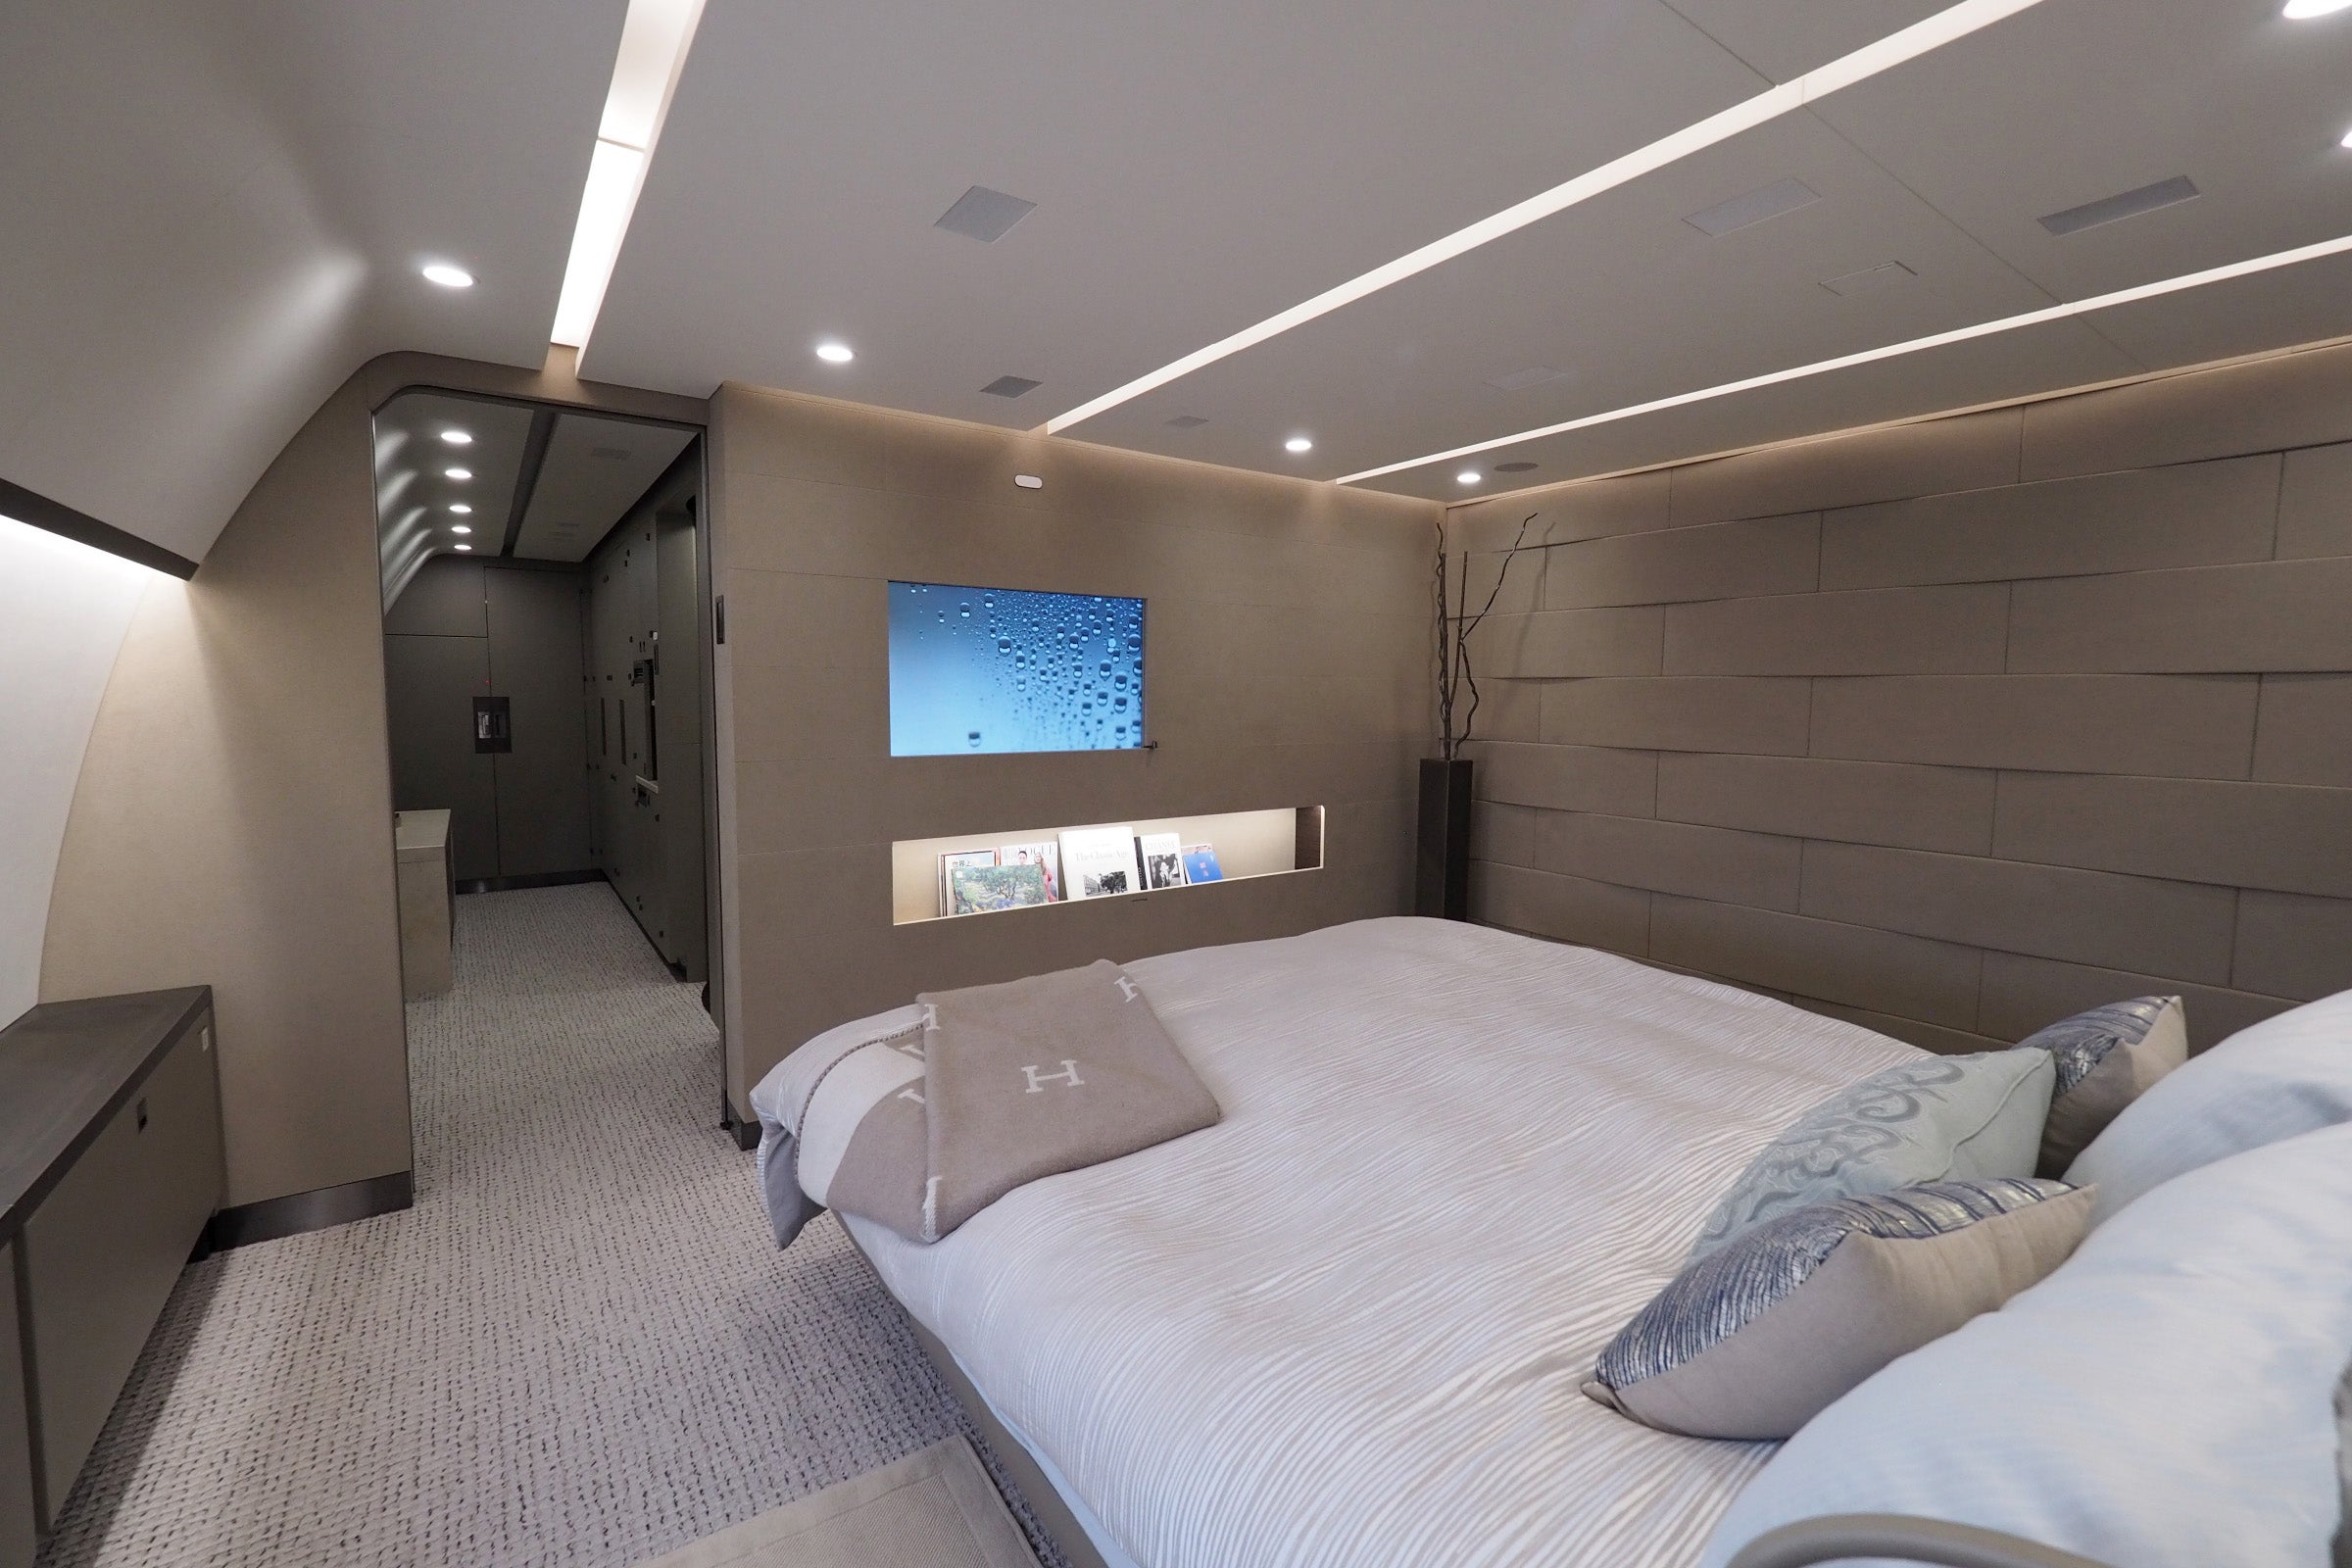 This Private Dreamliner Is The Ultimate 300 Million Flying Home